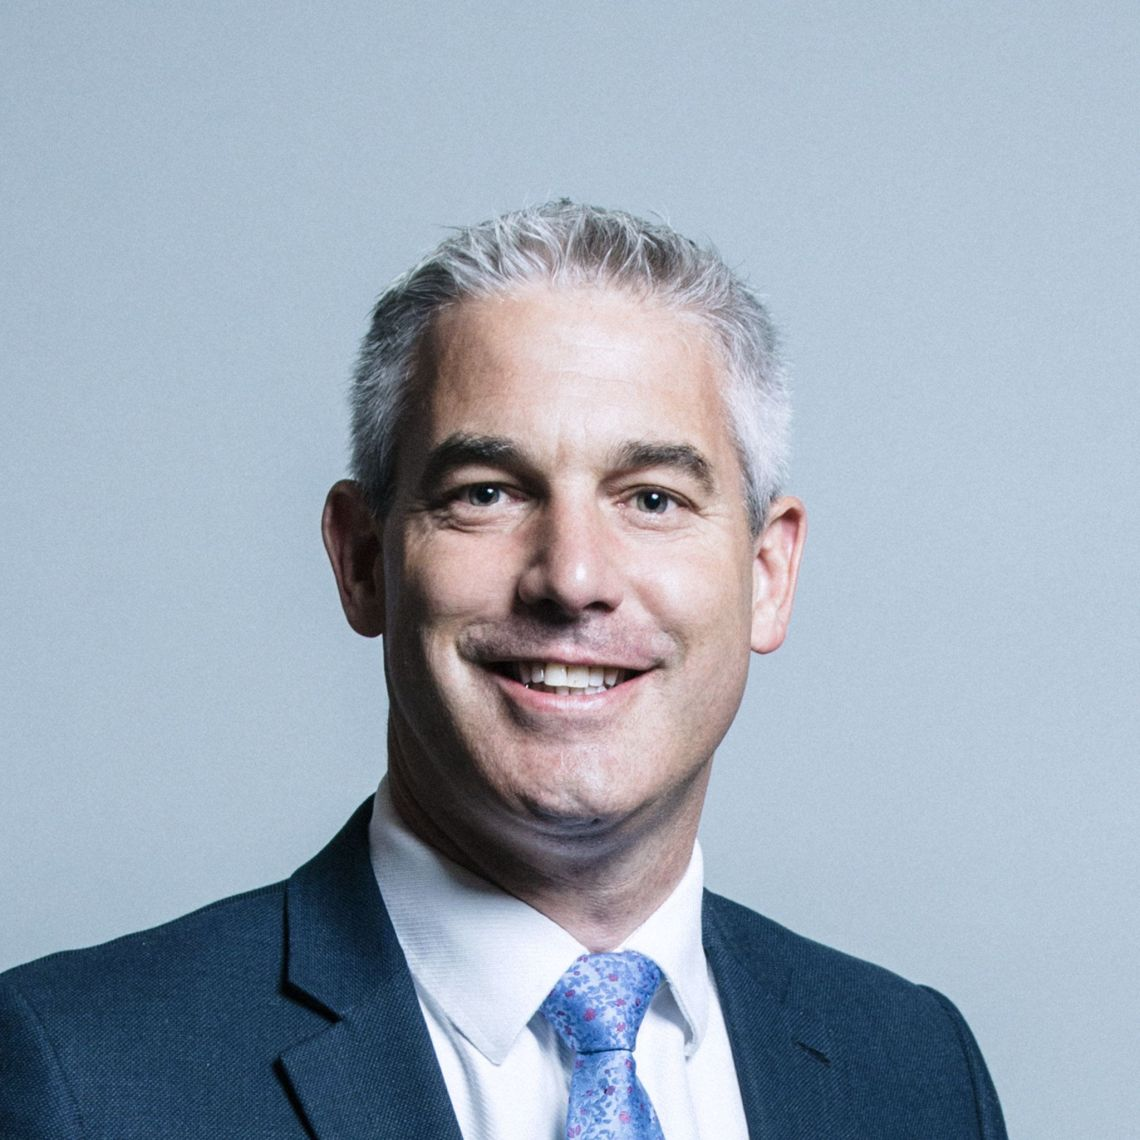 Stephen Barclay is the new Brexit secretary, Downing Street announced.